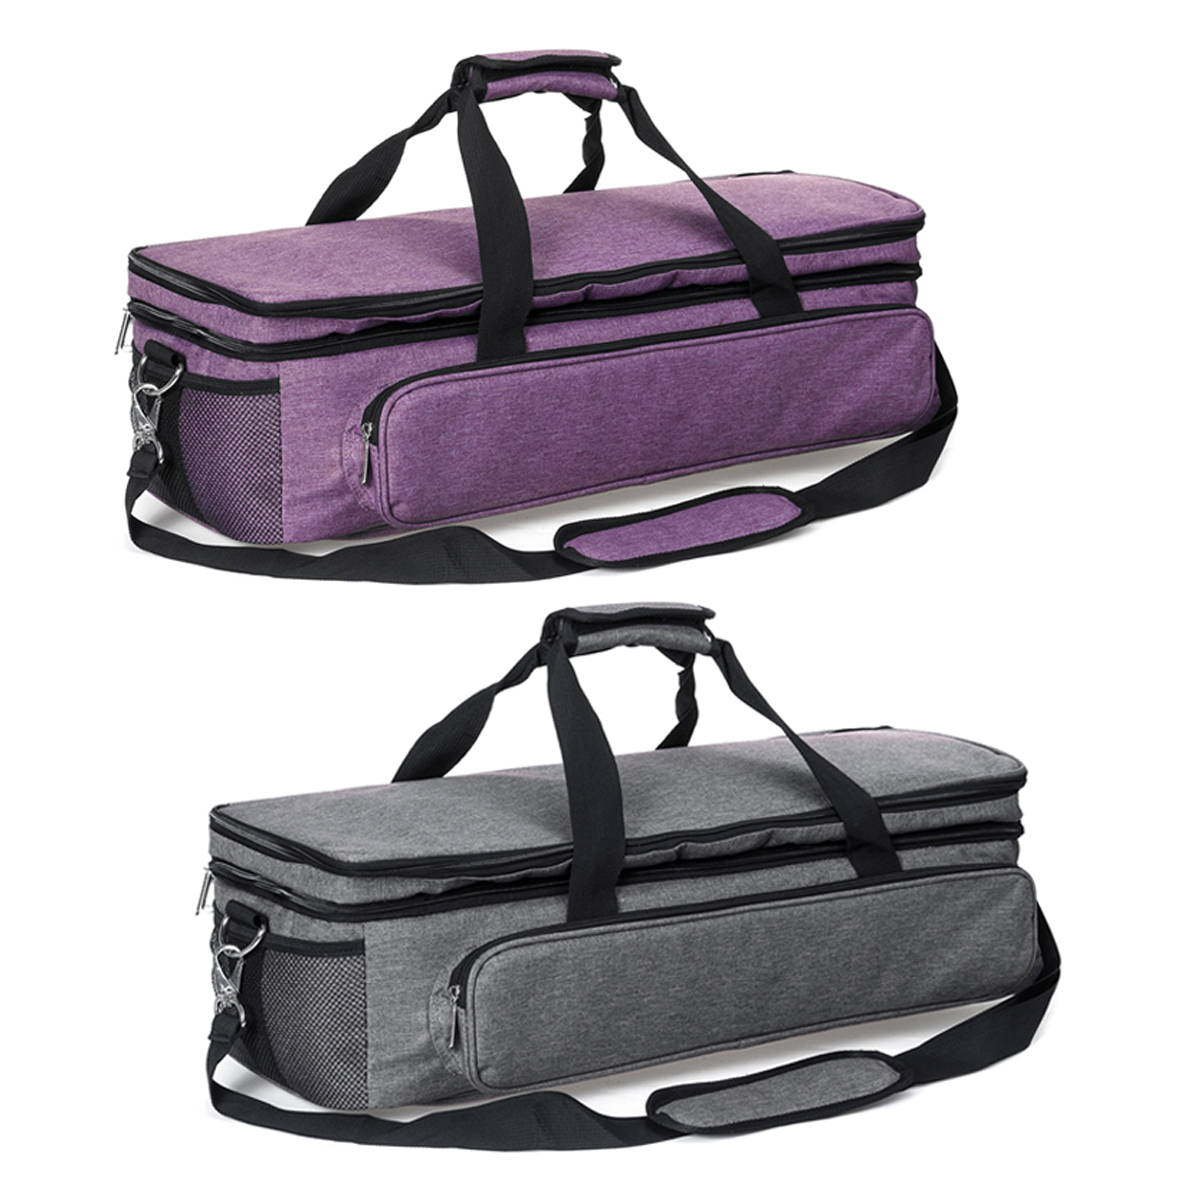 Portable 600D Oxford Cloth Cutting Machine Carrying Storage Bag Tool Travel Case